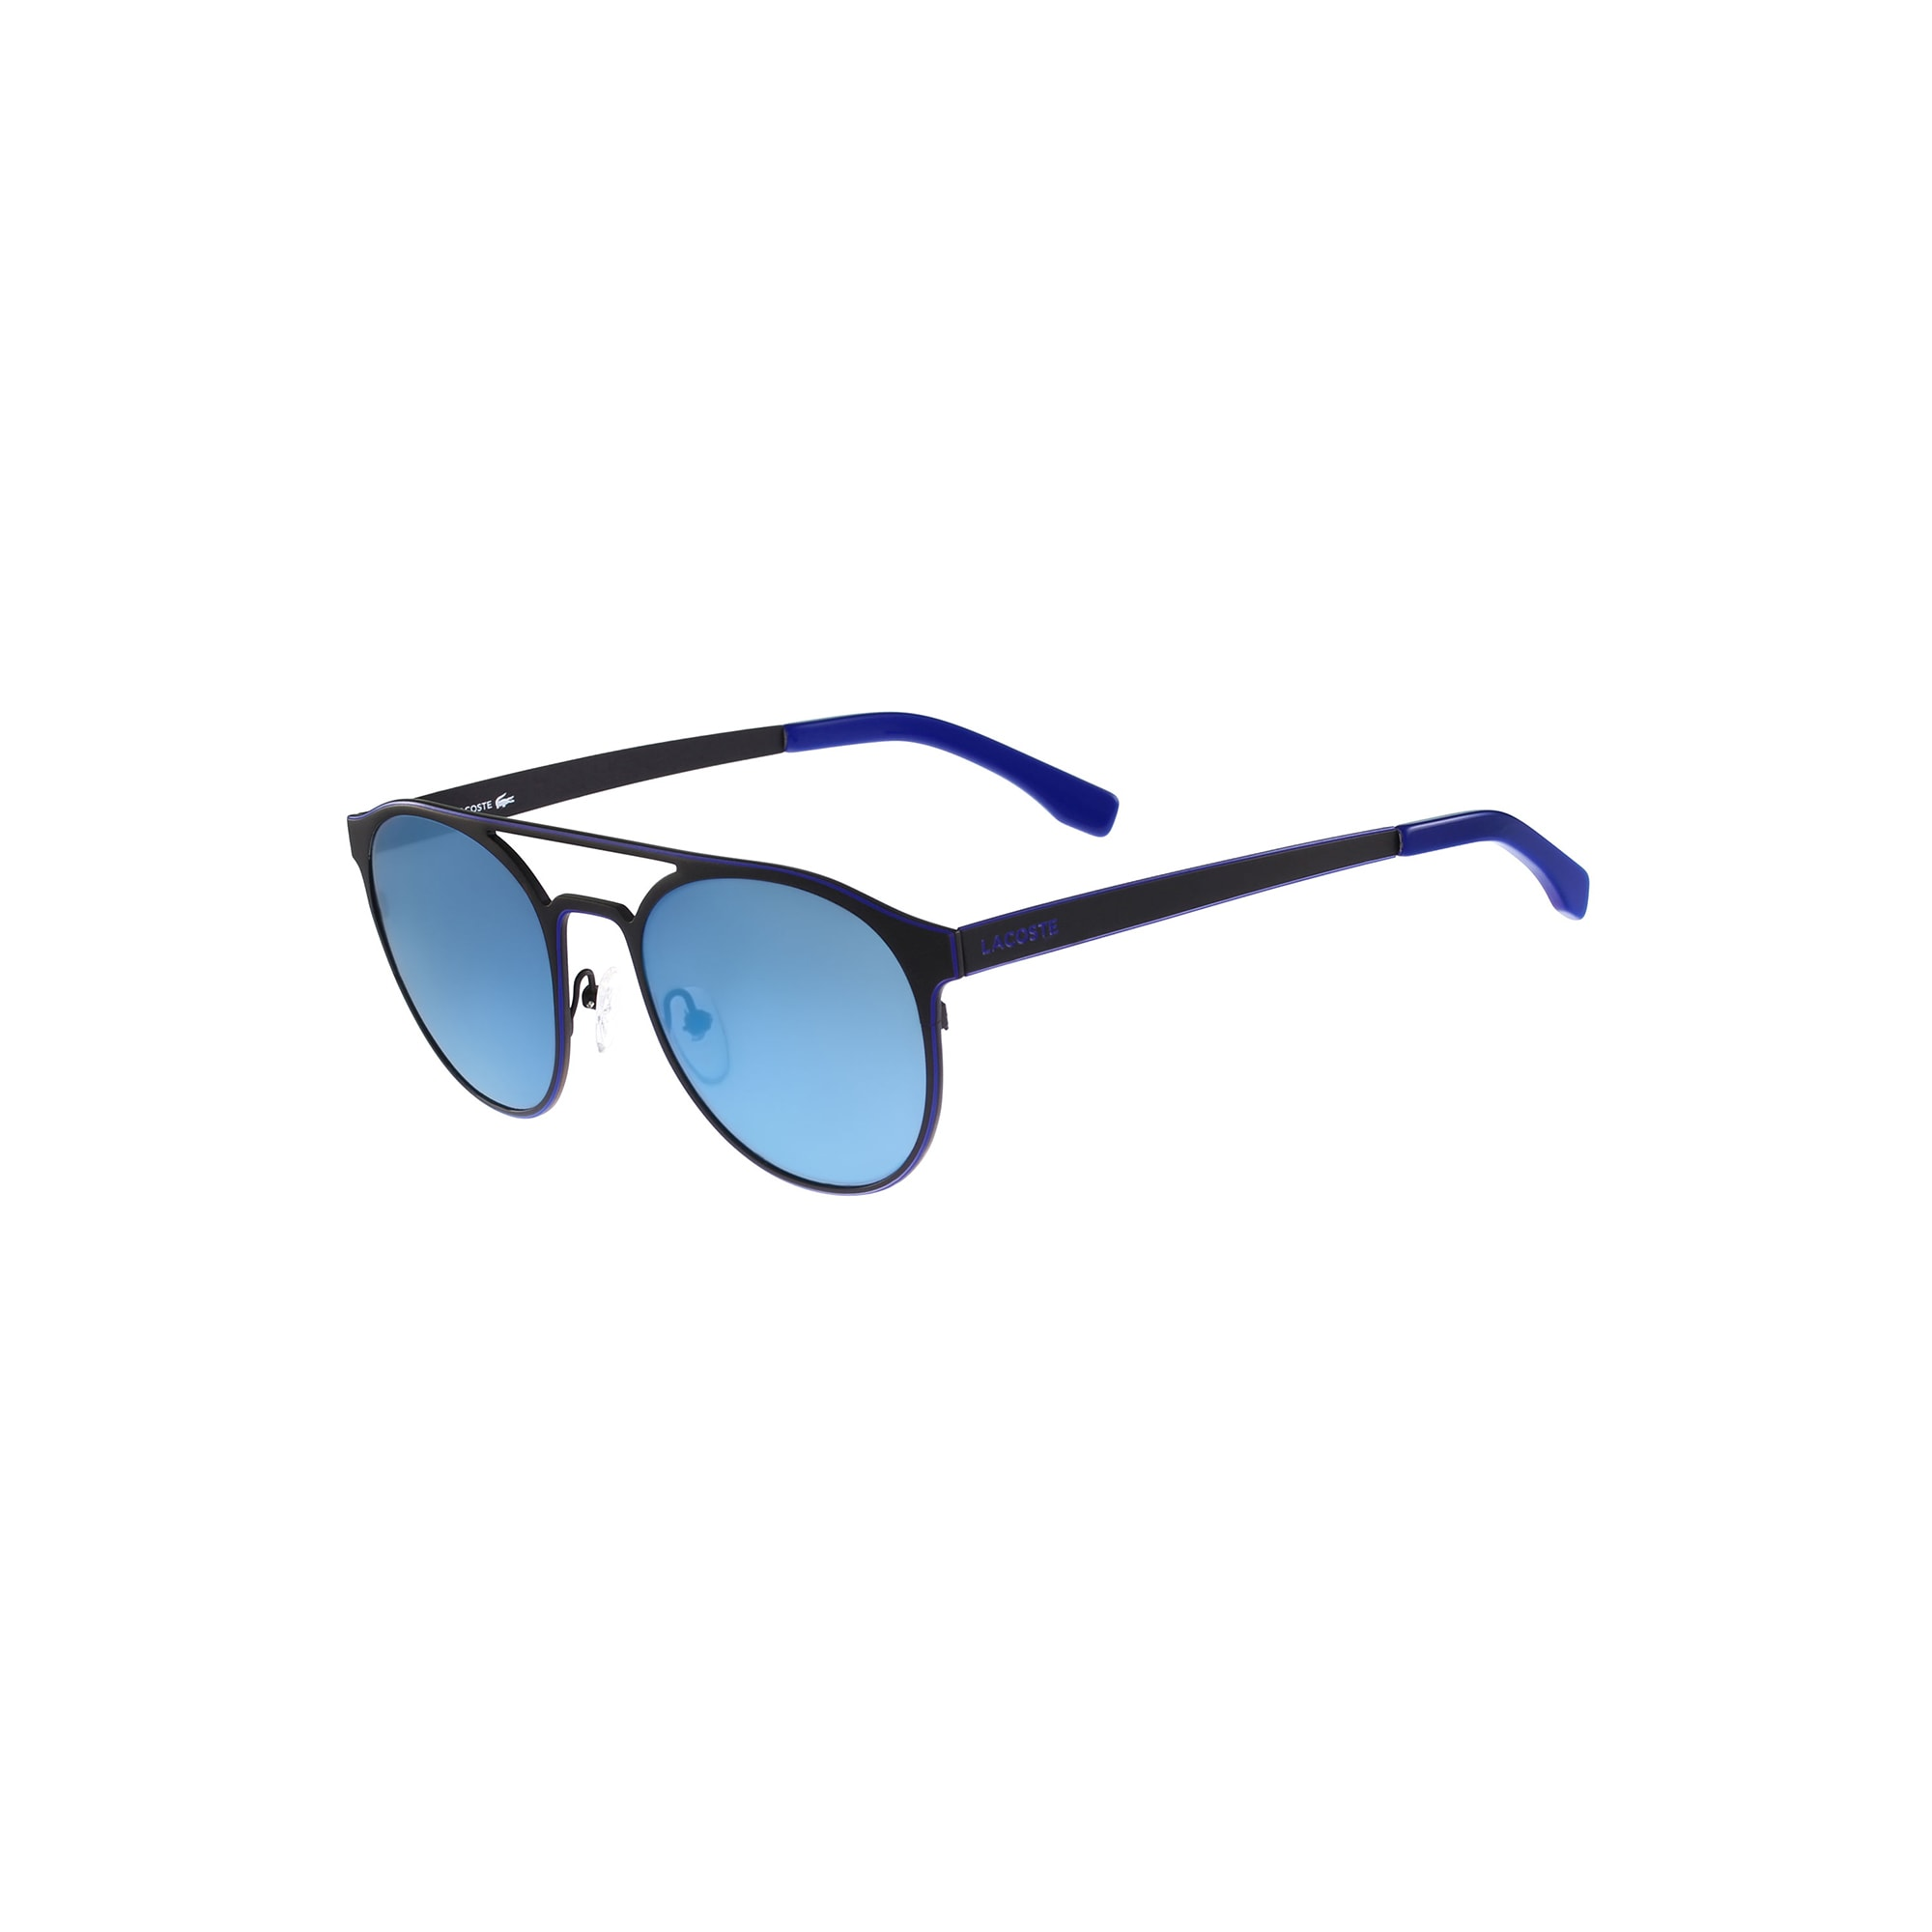 Unisex Double Bridge Sunglasses